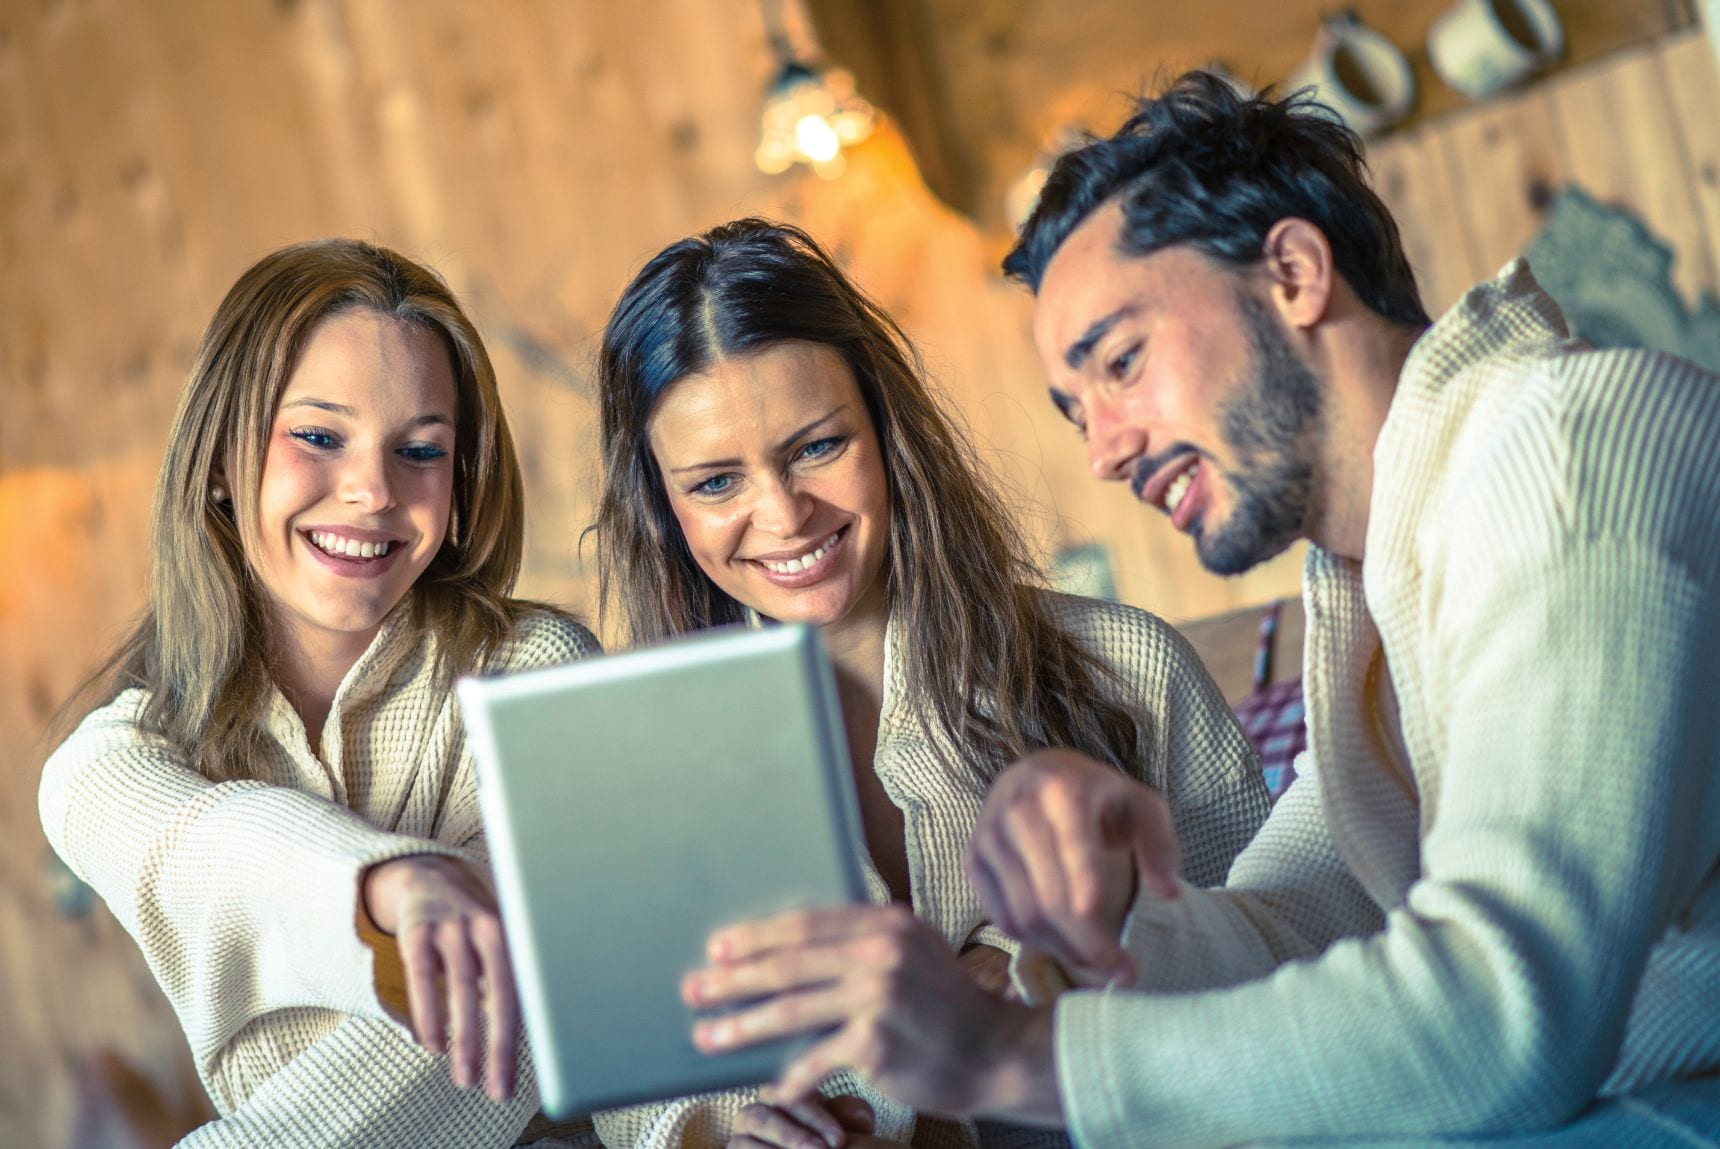 3 people happily looking at an IPad